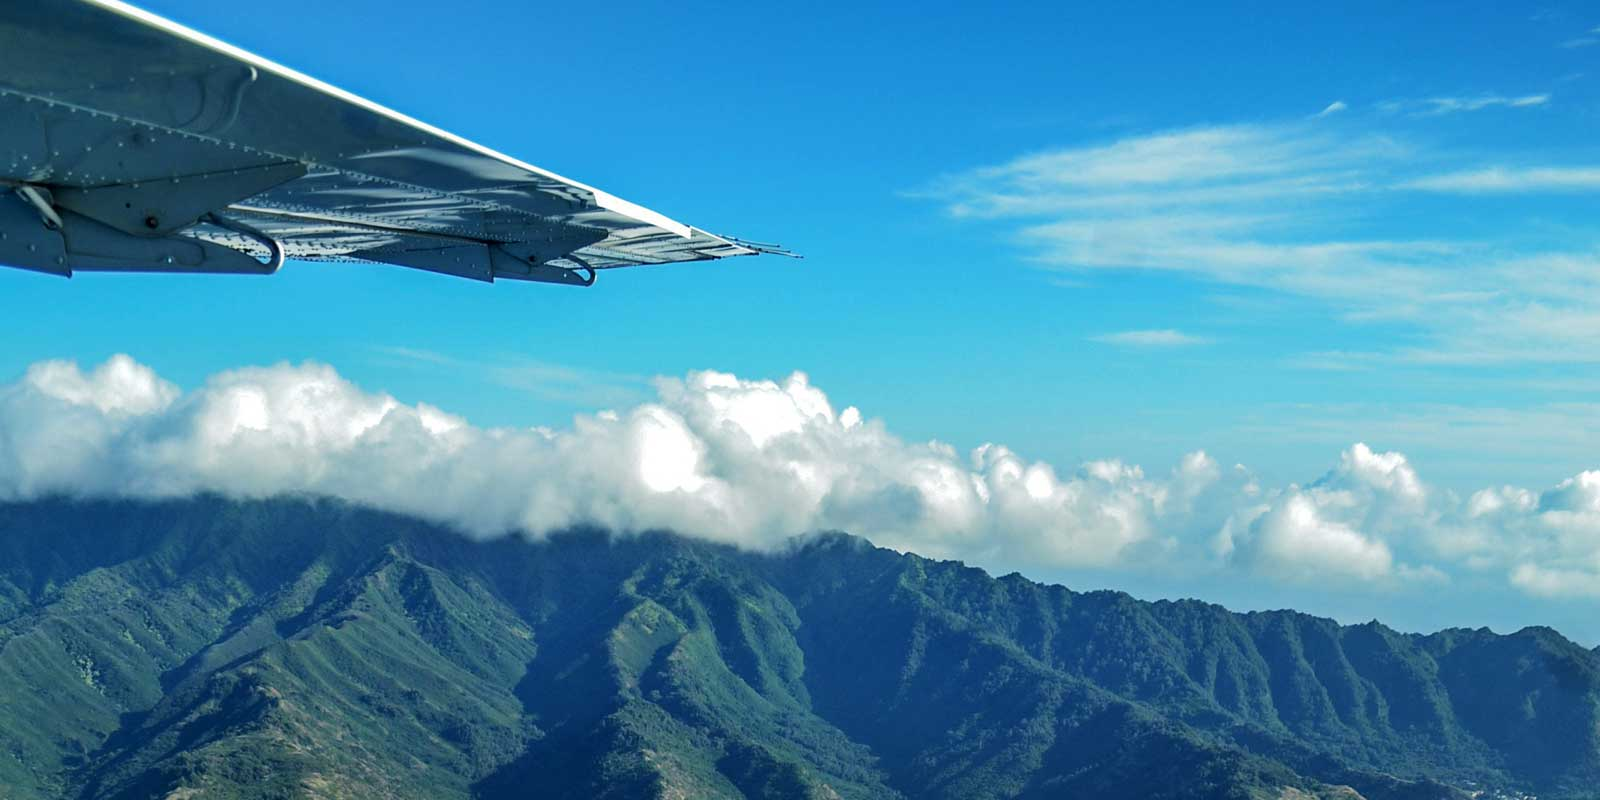 Fly between the islands of Hawaii to get the most out of your Hawaiian vacation.